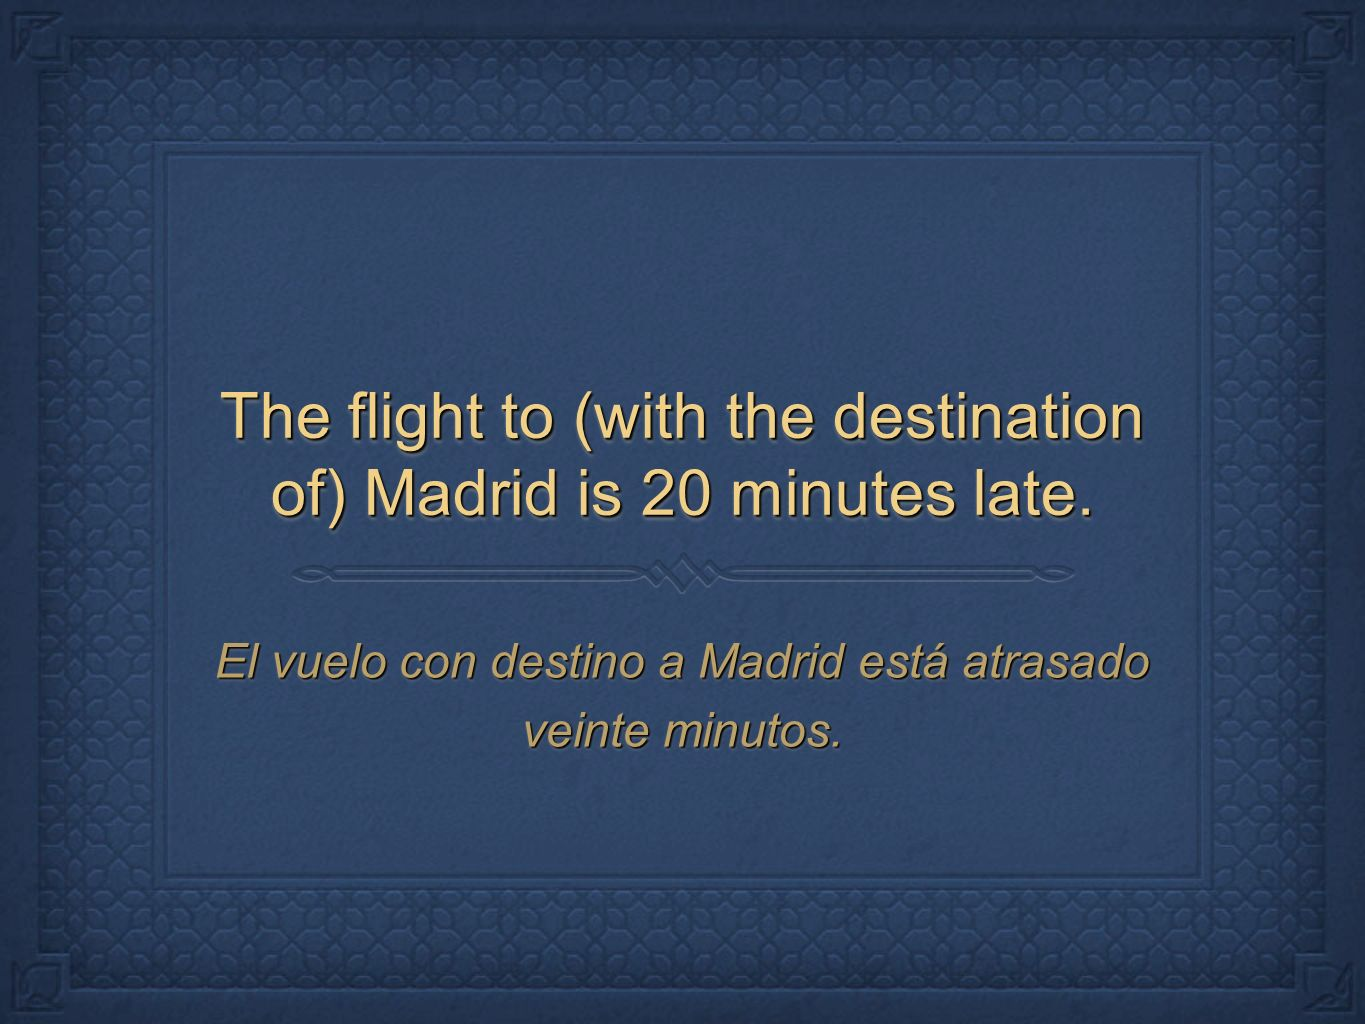 The flight to (with the destination of) Madrid is 20 minutes late.